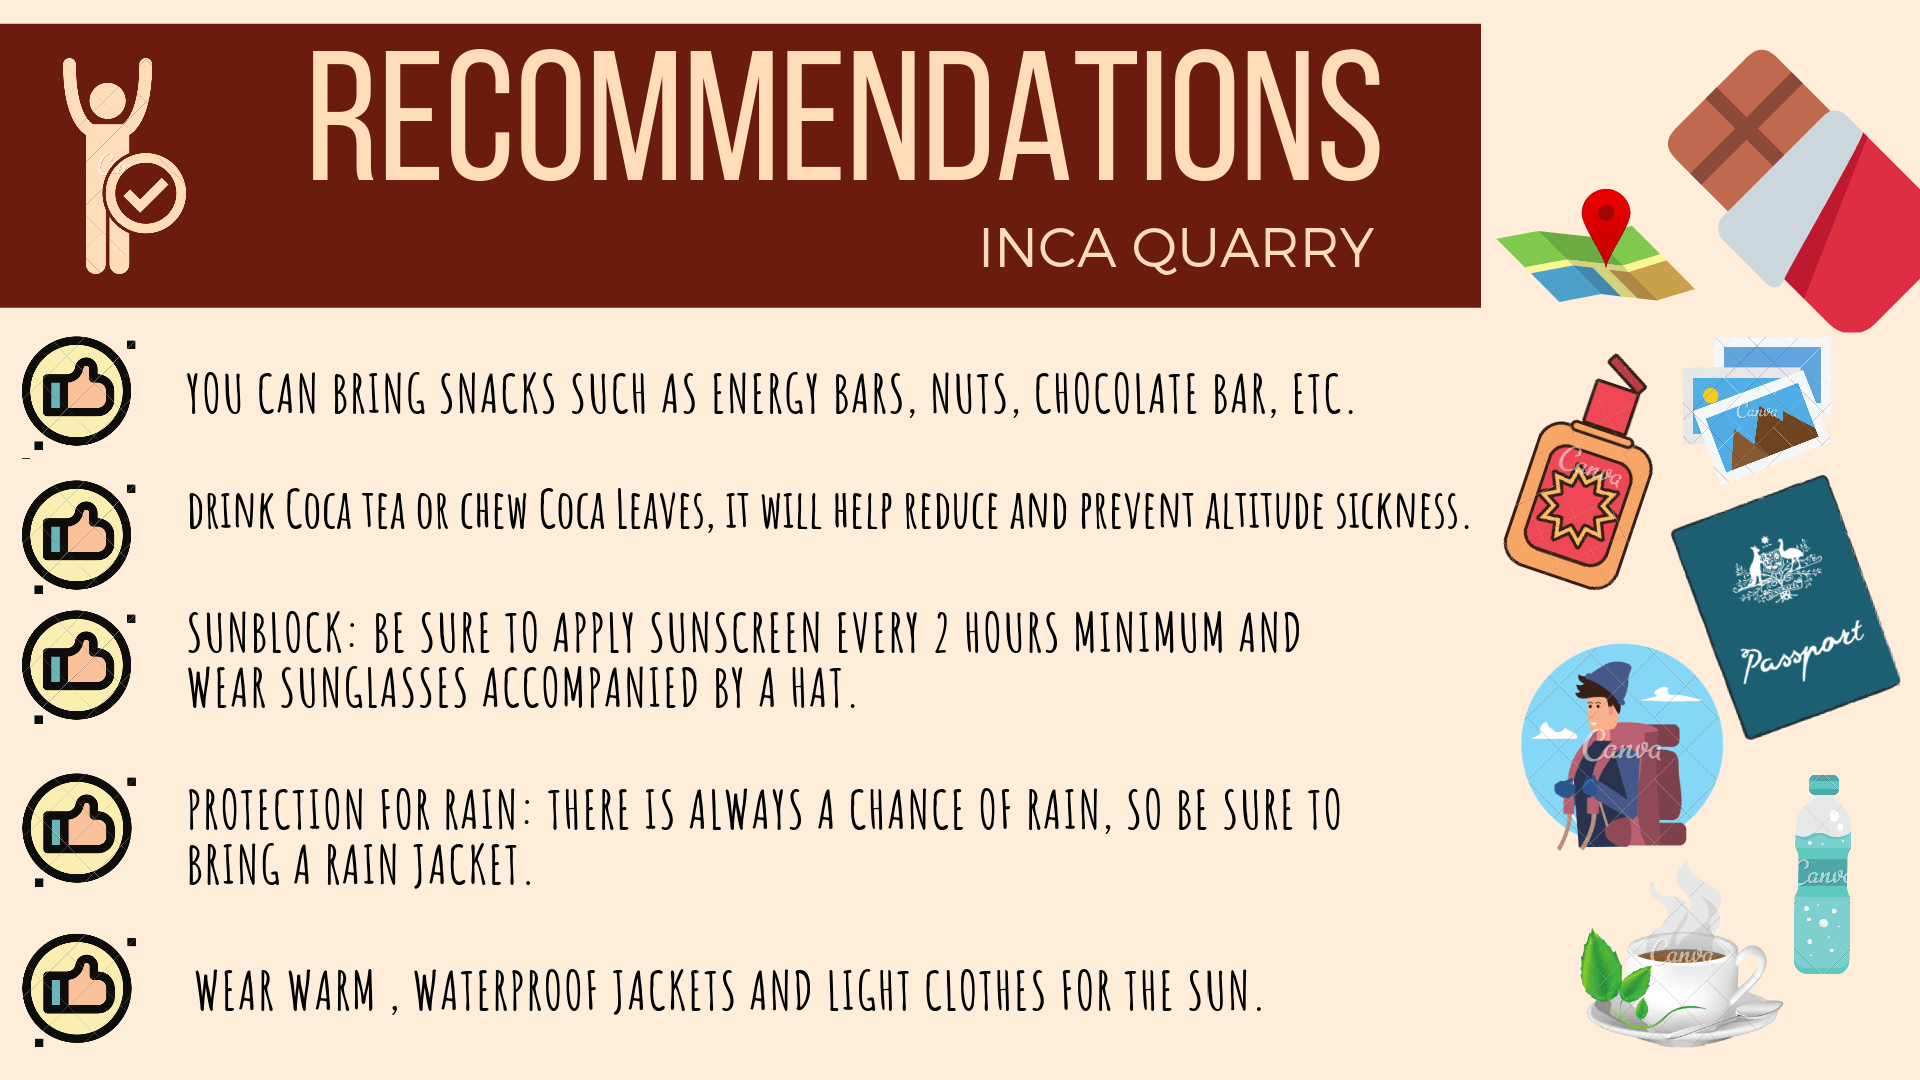 Intrepid-Inca-Quarry-Recommendations